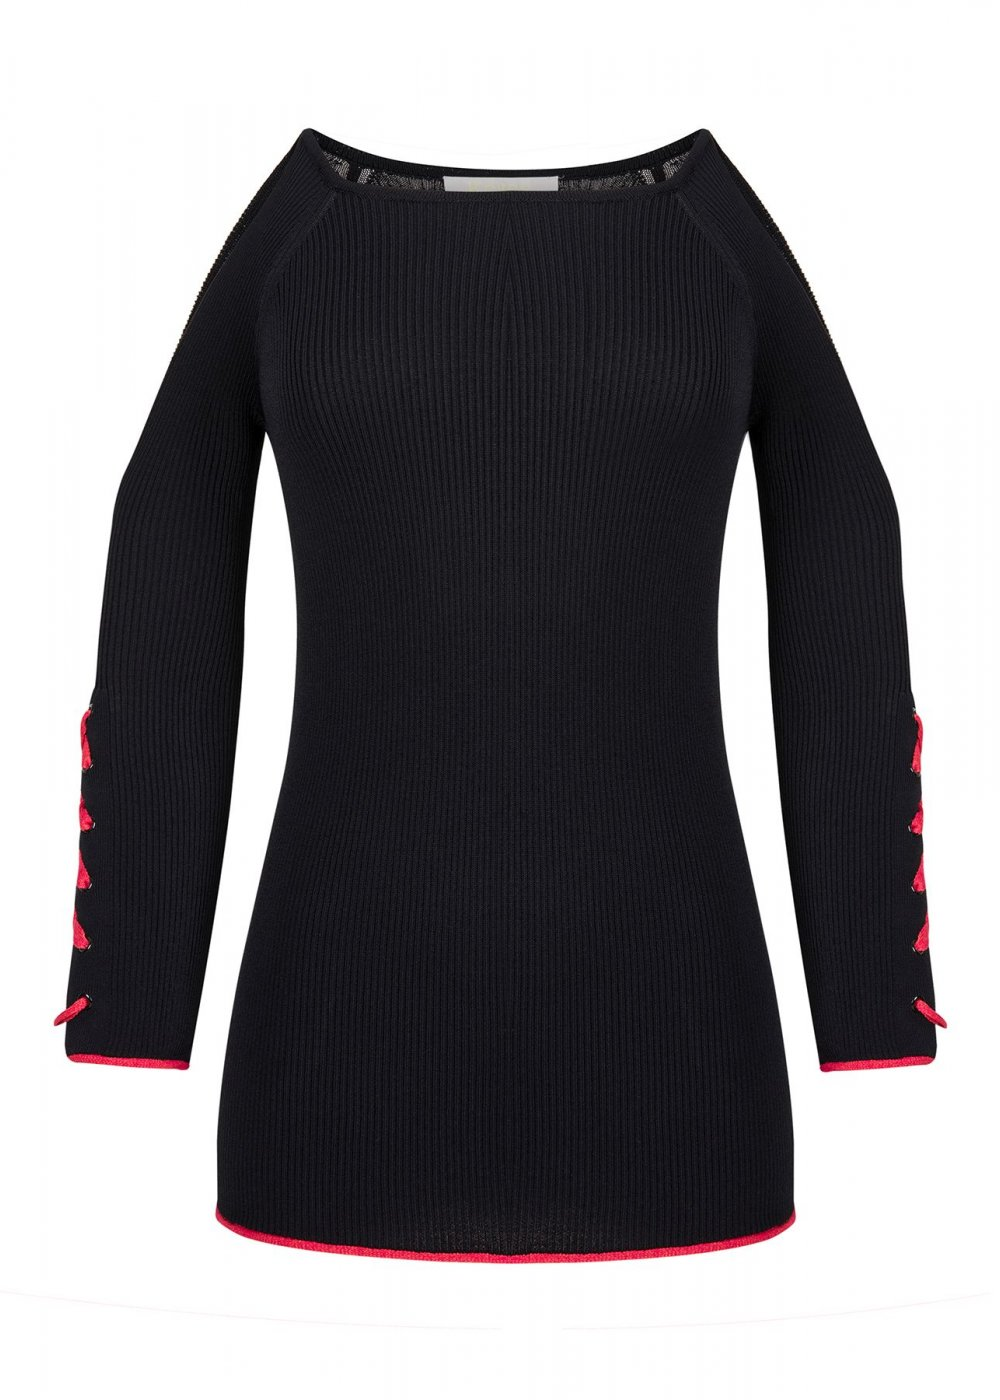 Long Sleeve Black Knitted Sweater